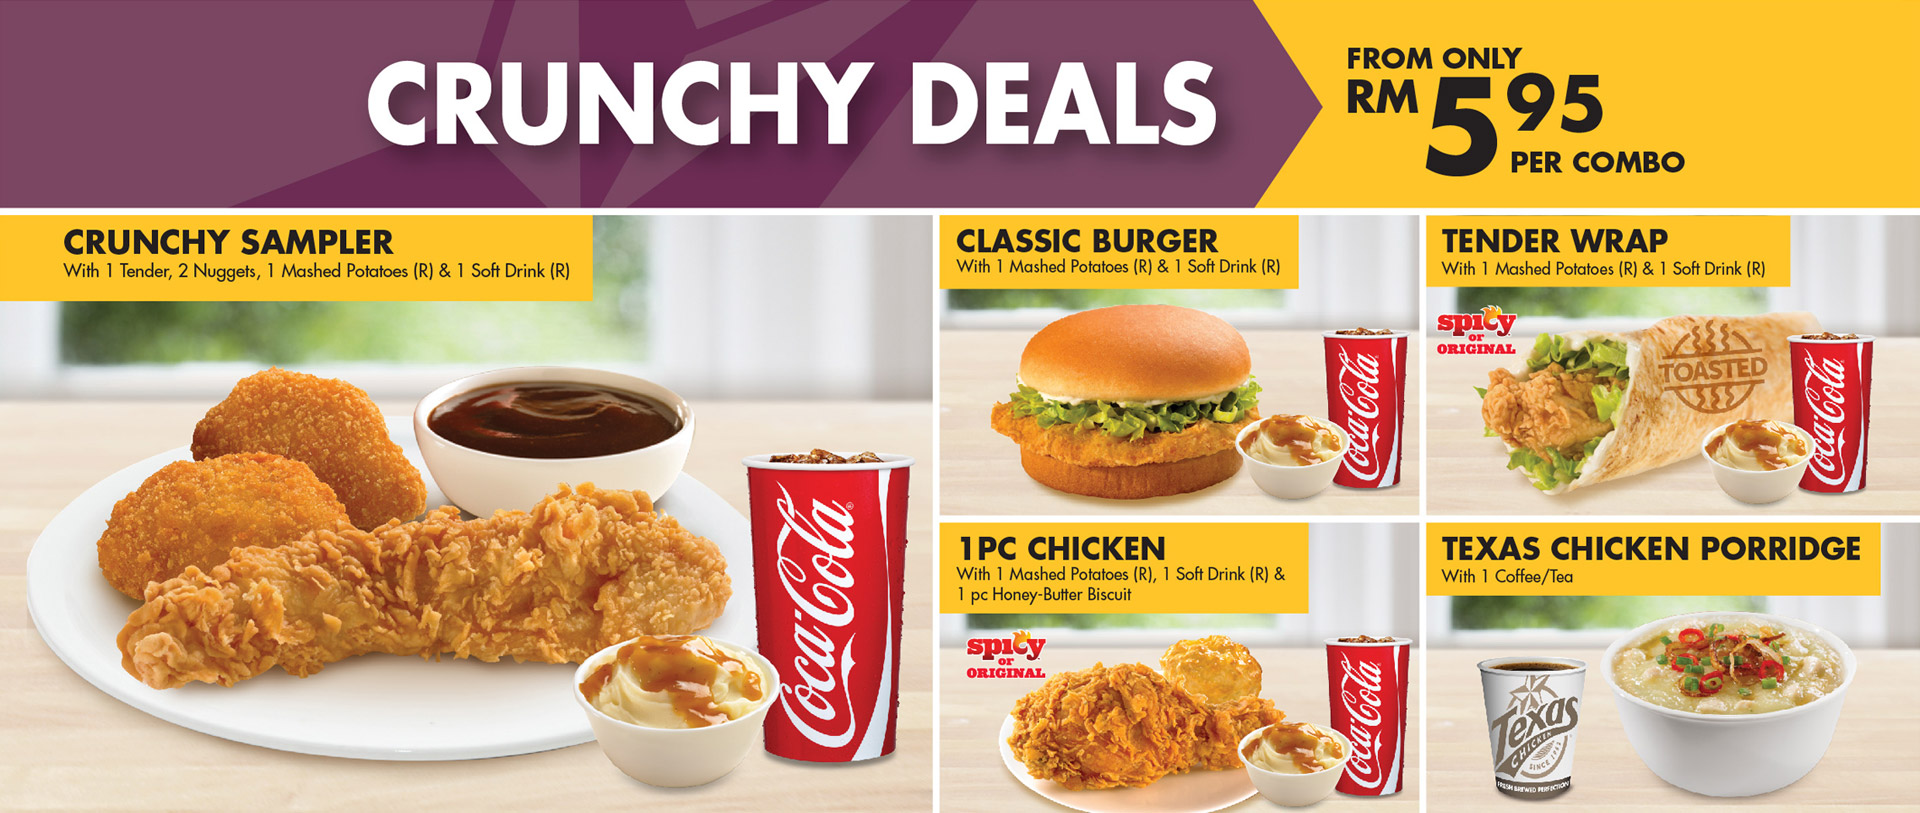 Texas Chicken Promotions: Crunchy Deals. From only RM5.95 per combo.